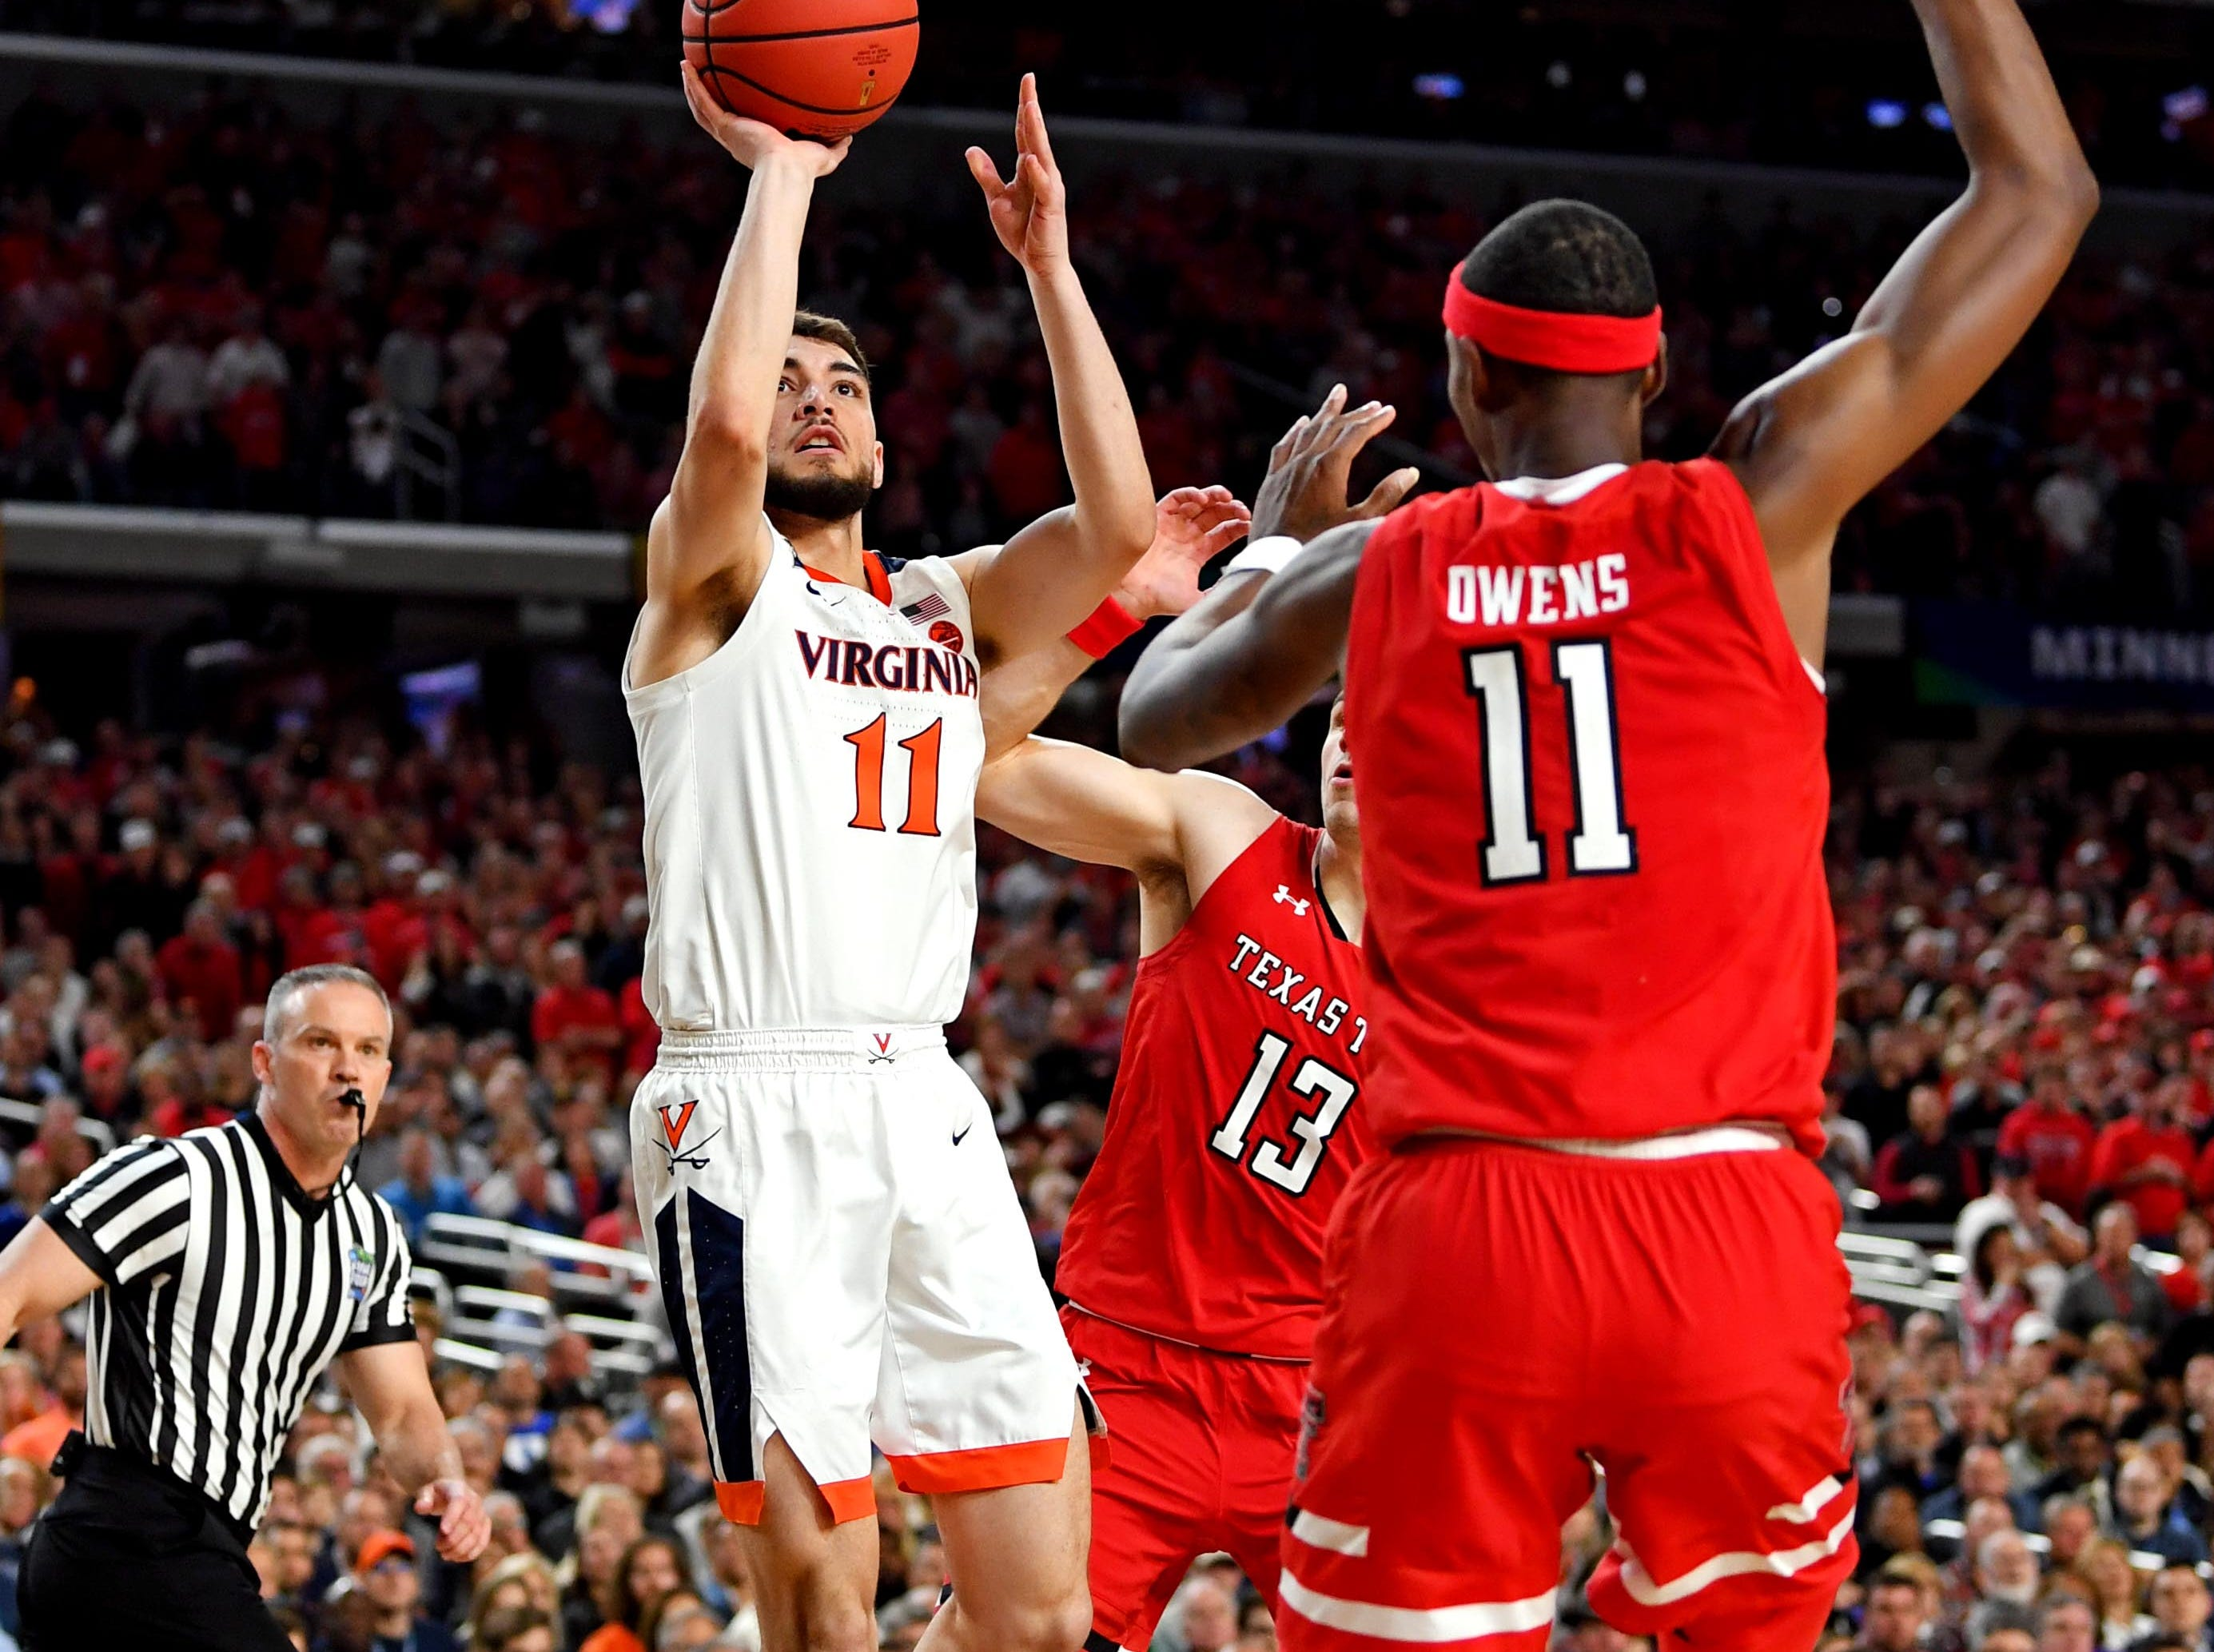 Apr 8, 2019; Minneapolis, MN, USA; Virginia Cavaliers guard Ty Jerome (11) shoots the ball against Texas Tech Red Raiders forward Tariq Owens (11) during the first half in the championship game of the 2019 men's Final Four at US Bank Stadium. Mandatory Credit: Bob Donnan-USA TODAY Sports